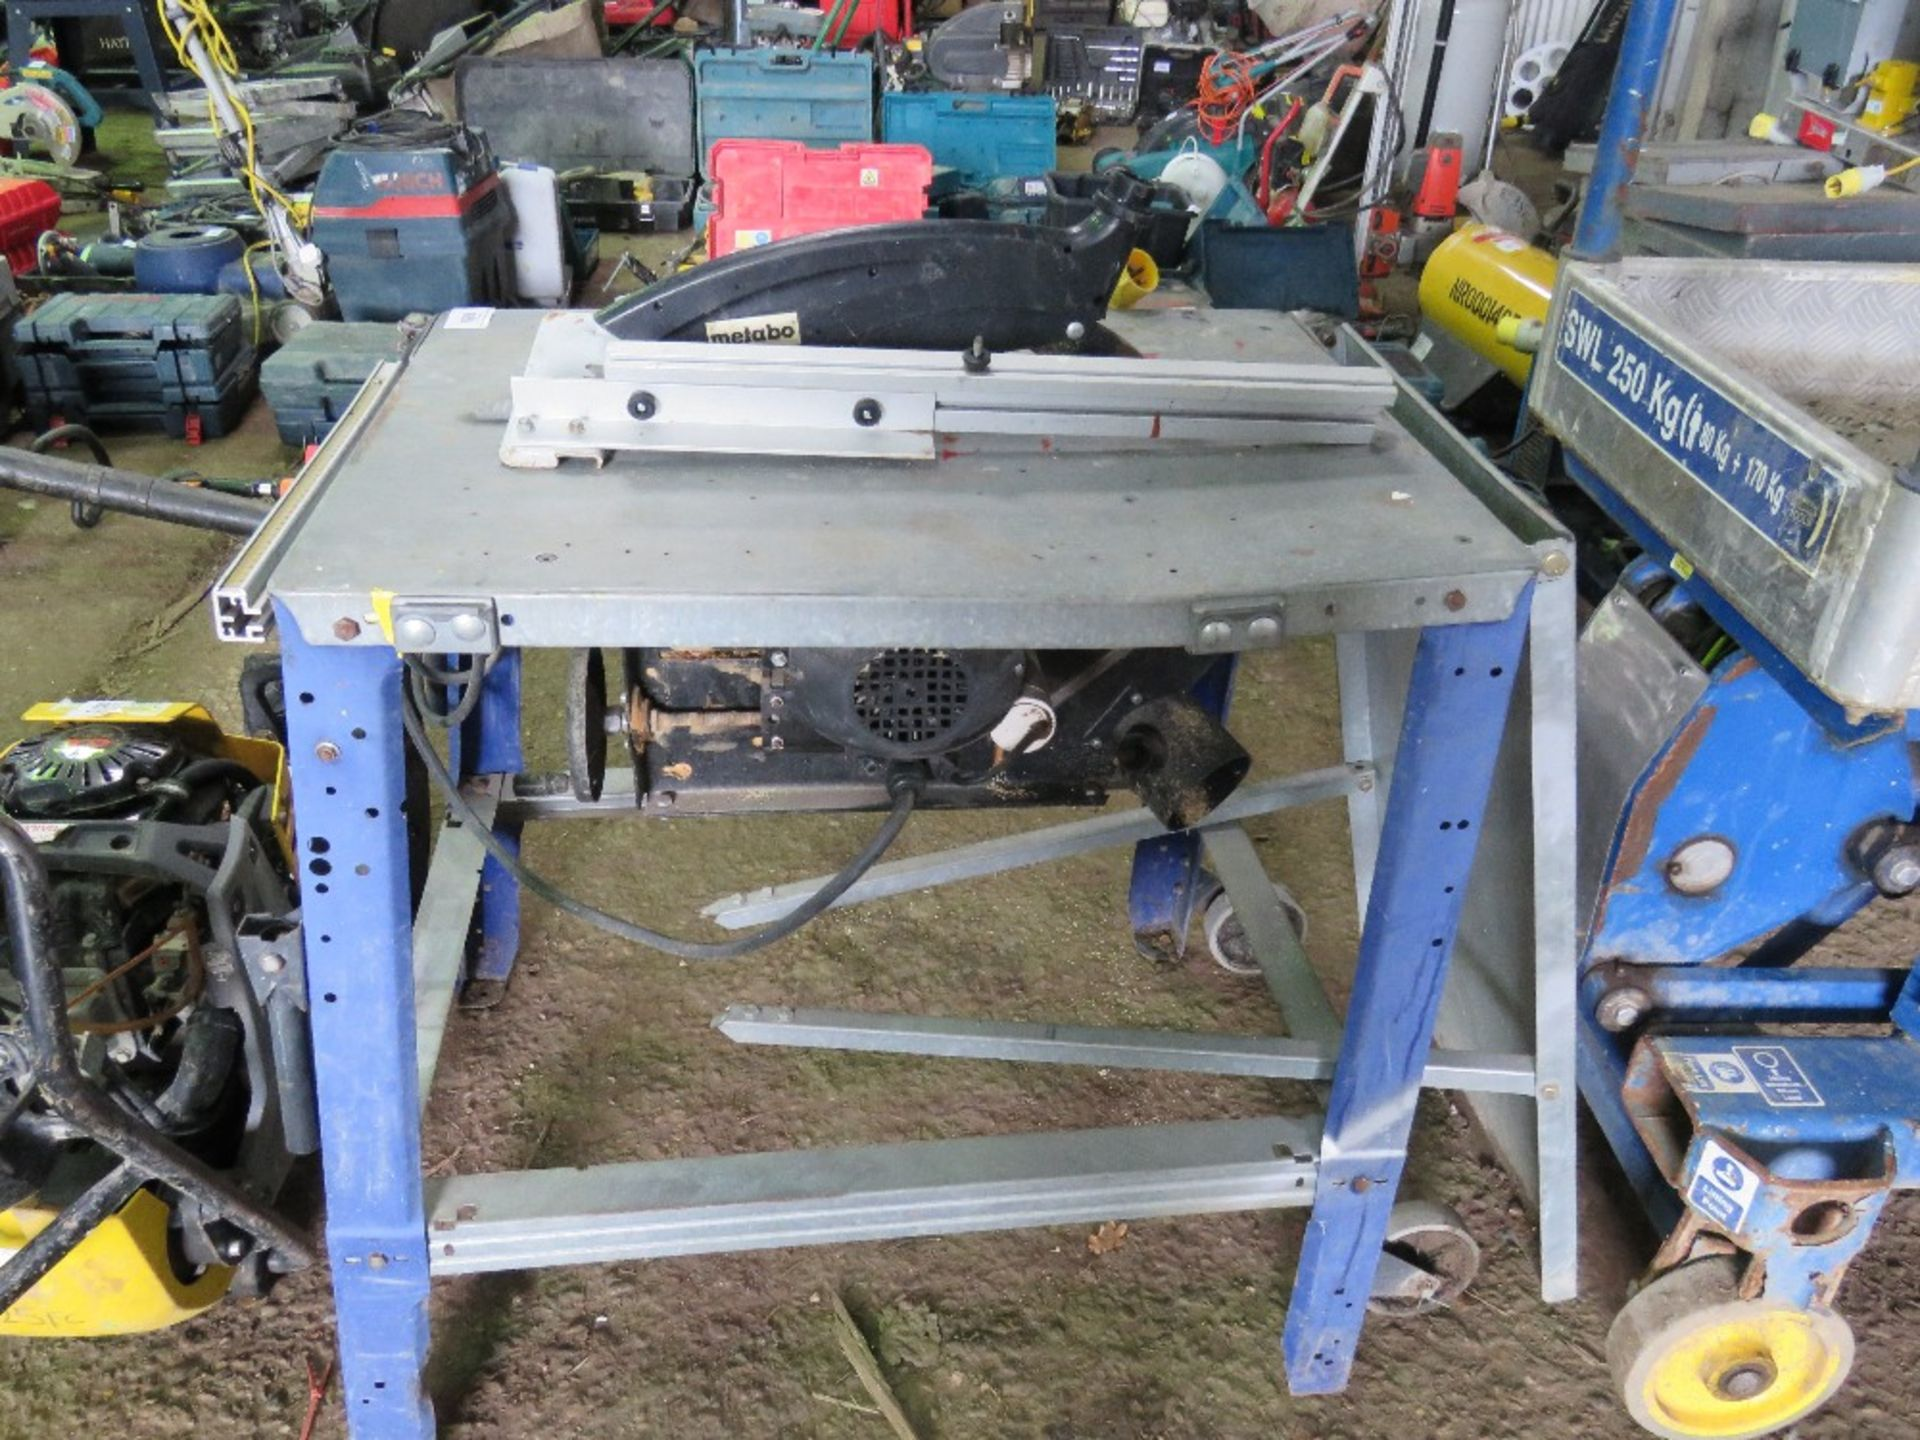 Lot 869 - METABO 110VOLT SAWBENCH